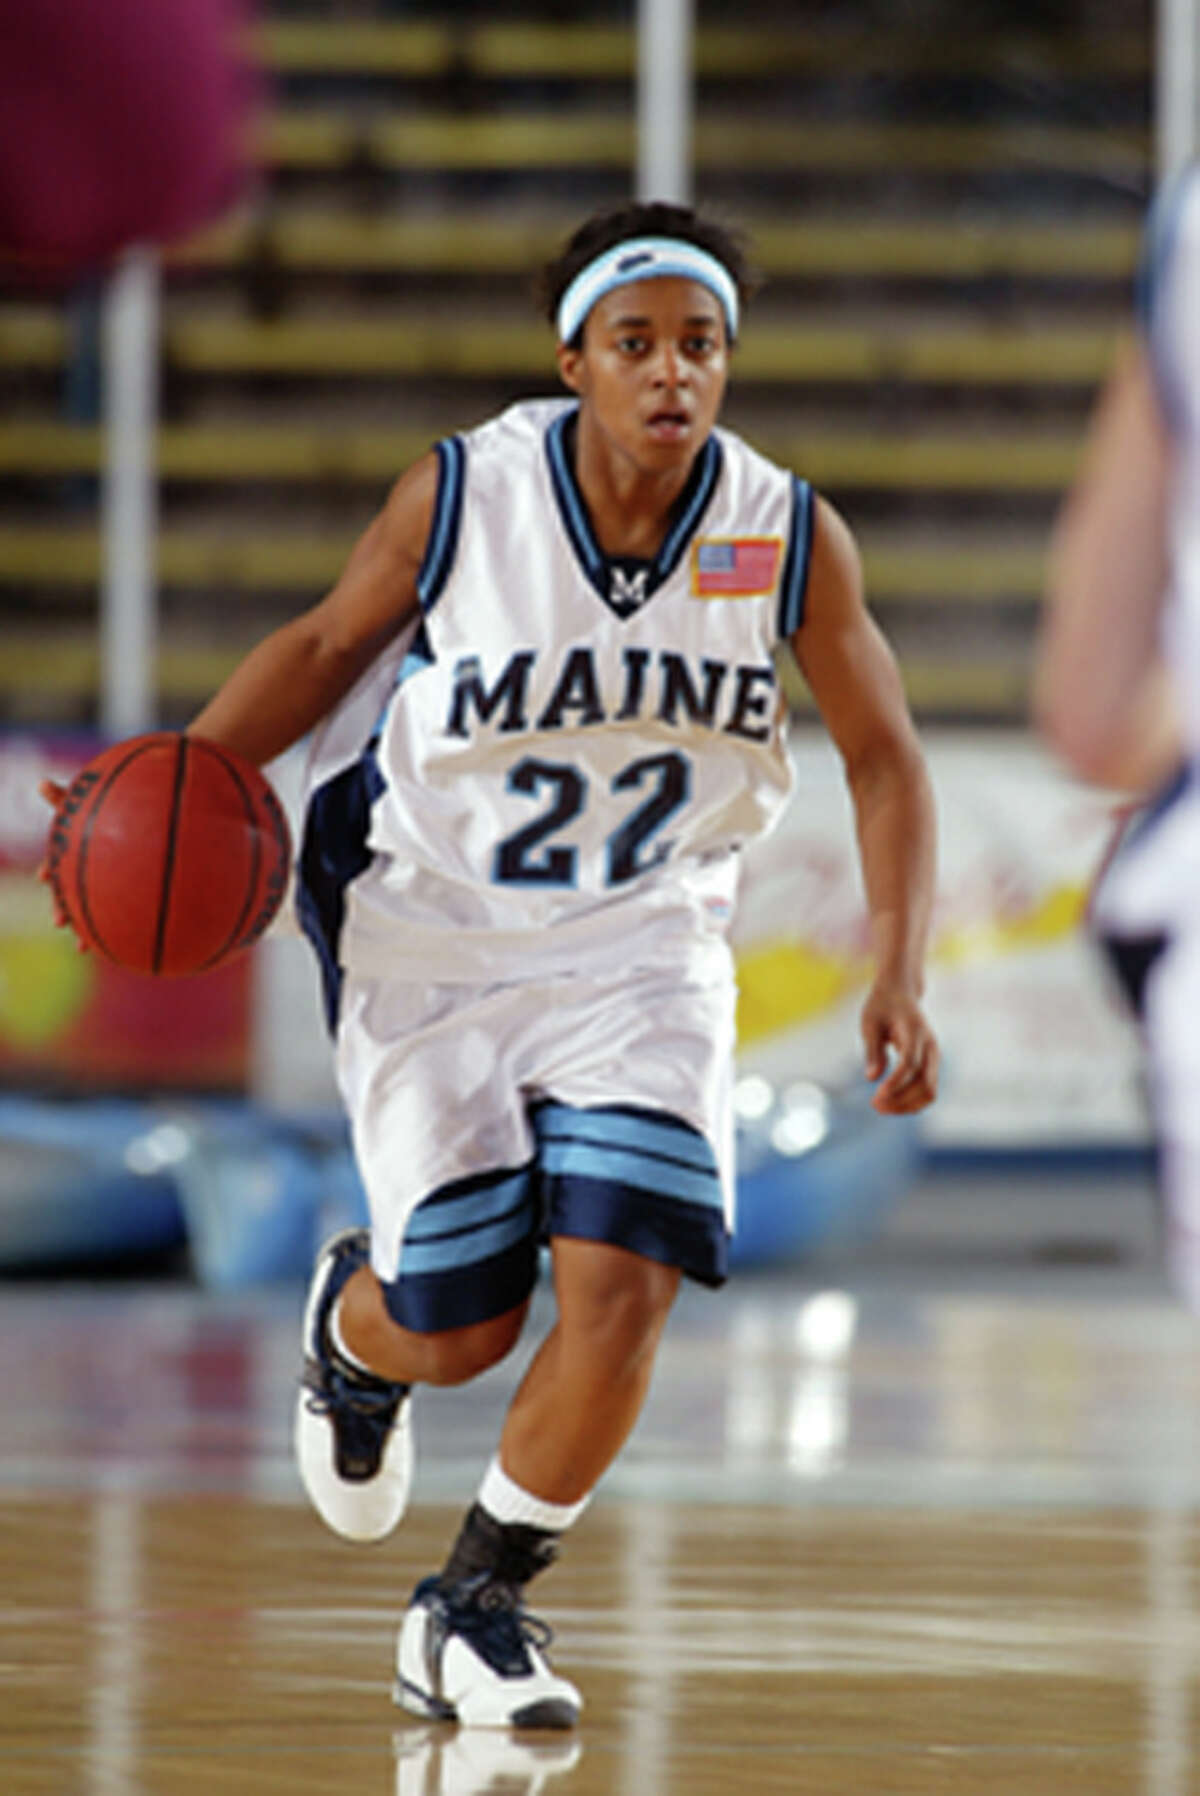 Kim Corbitt was a point guard at the University of Maine, and was America East Player of the Year as a senior. (Courtesy of Maine)